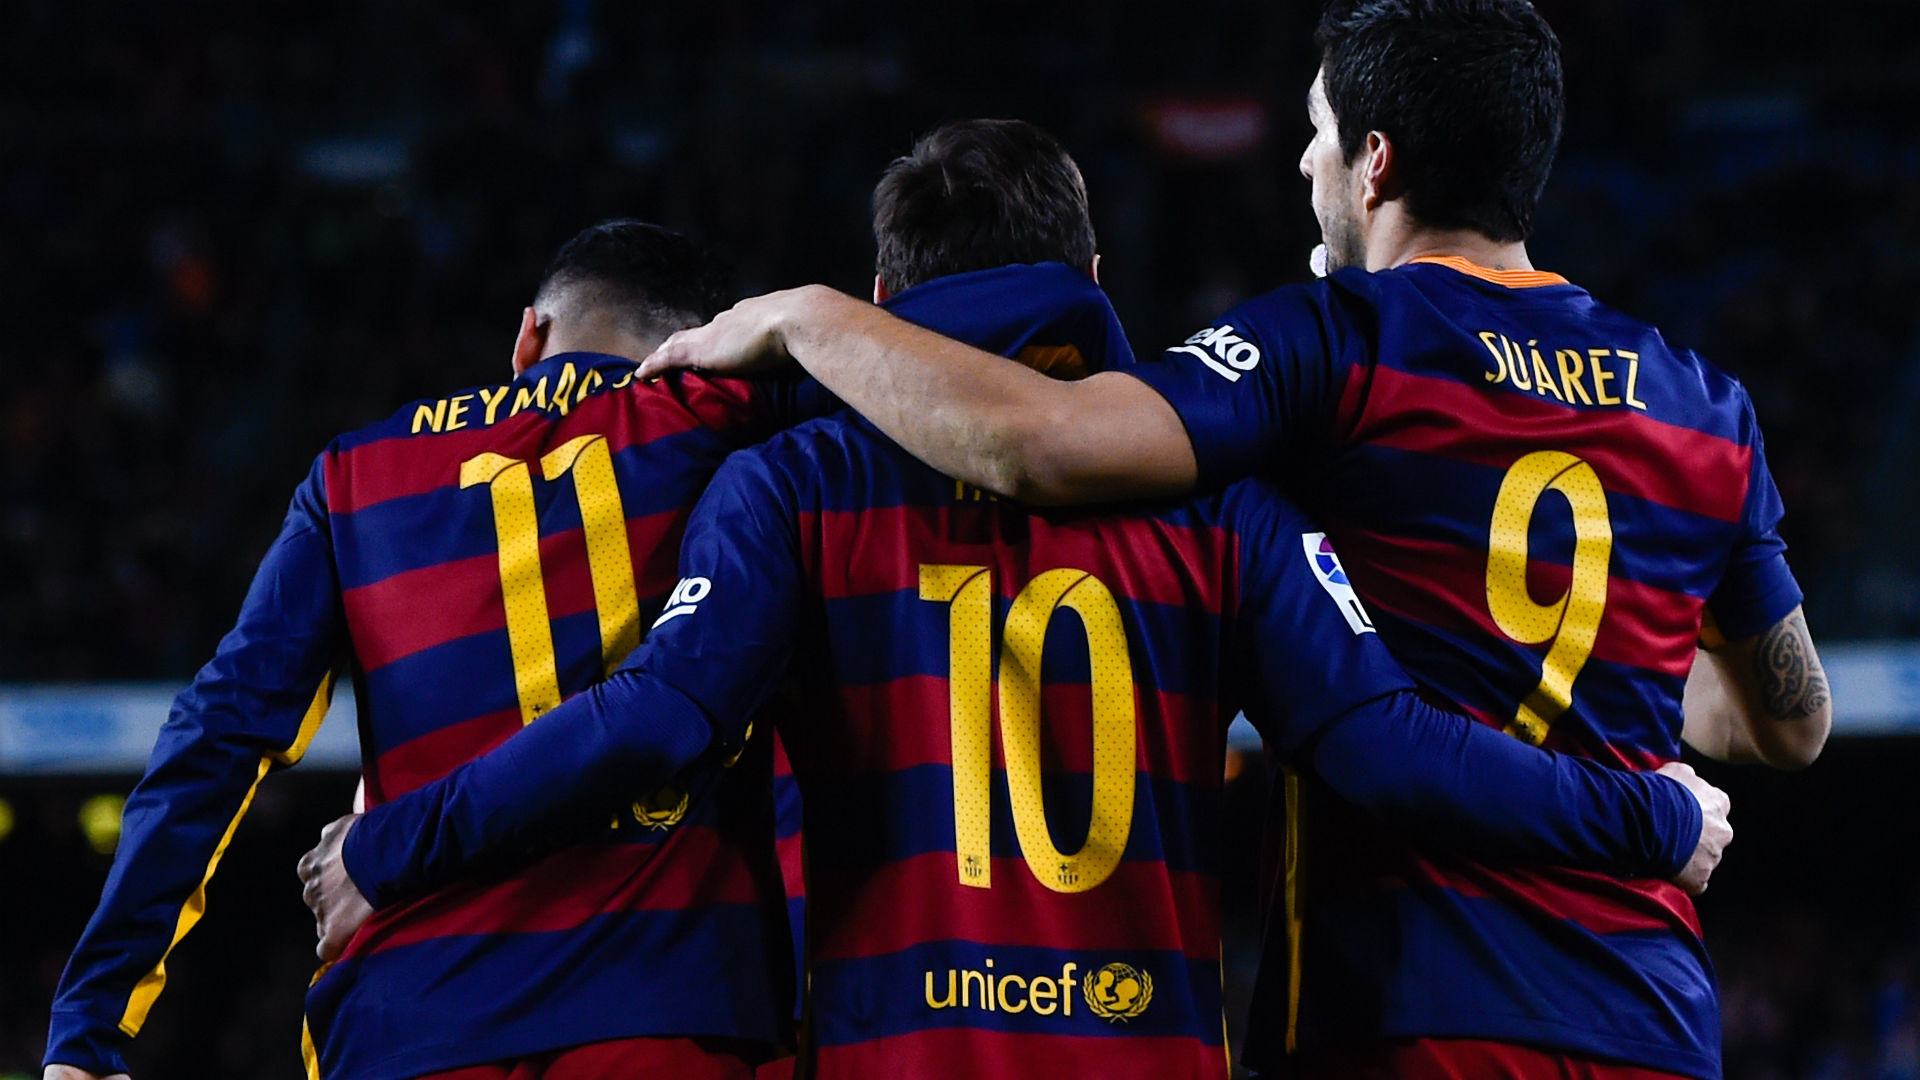 Arsene Wenger insists Arsenal are prepared to face Messi, Suarez and Neymar